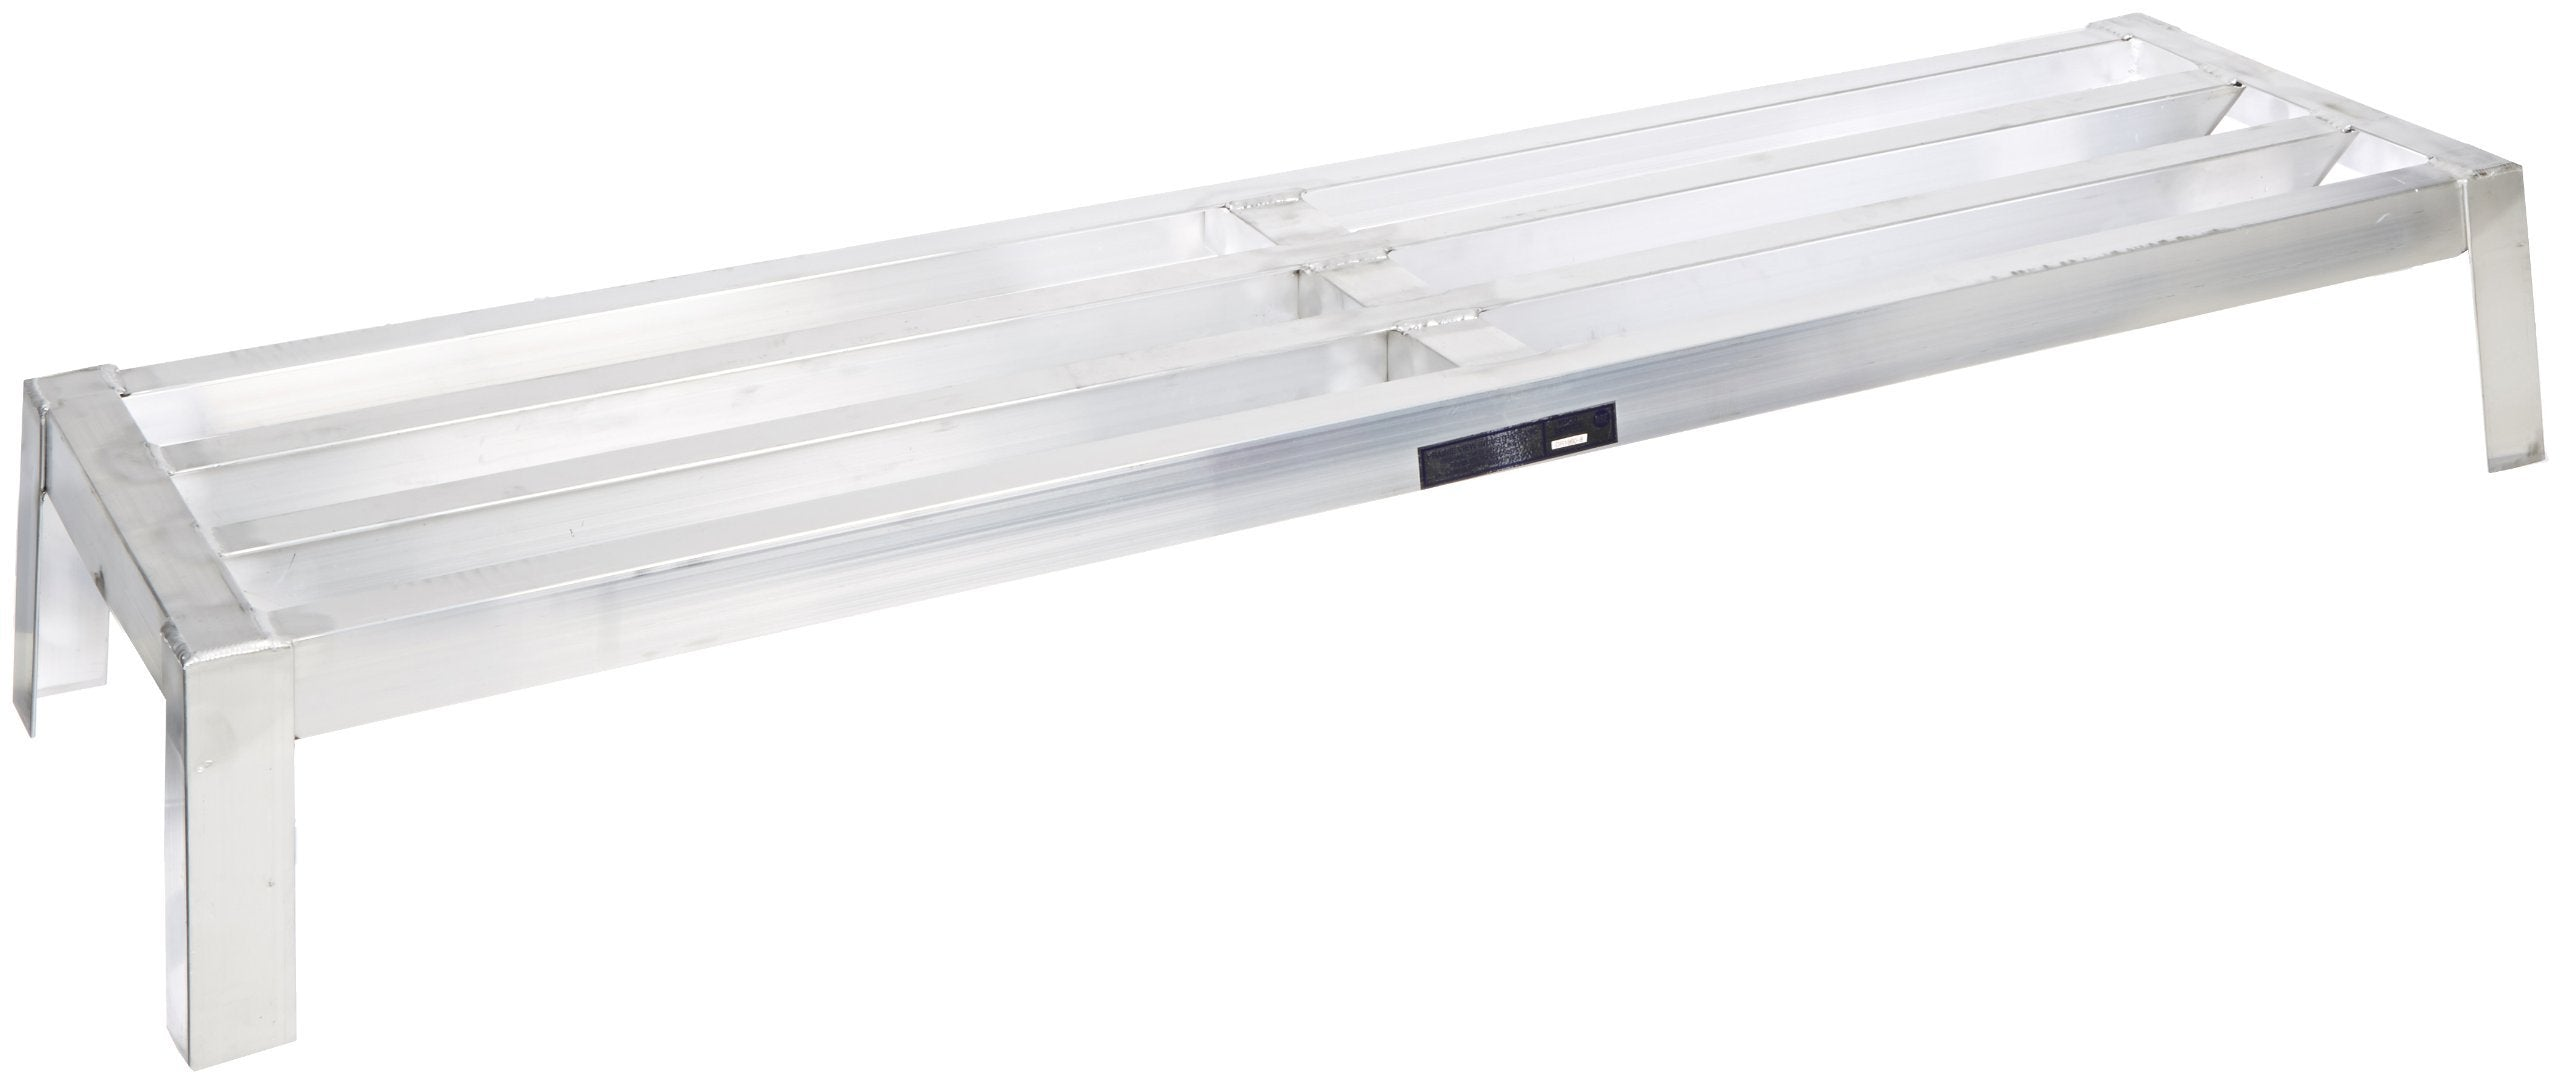 "PVIFS DR1860-8 Dunnage Rack with 8"" Leg Nesting, 60"" Length x 18"" Width x 8"" Height"